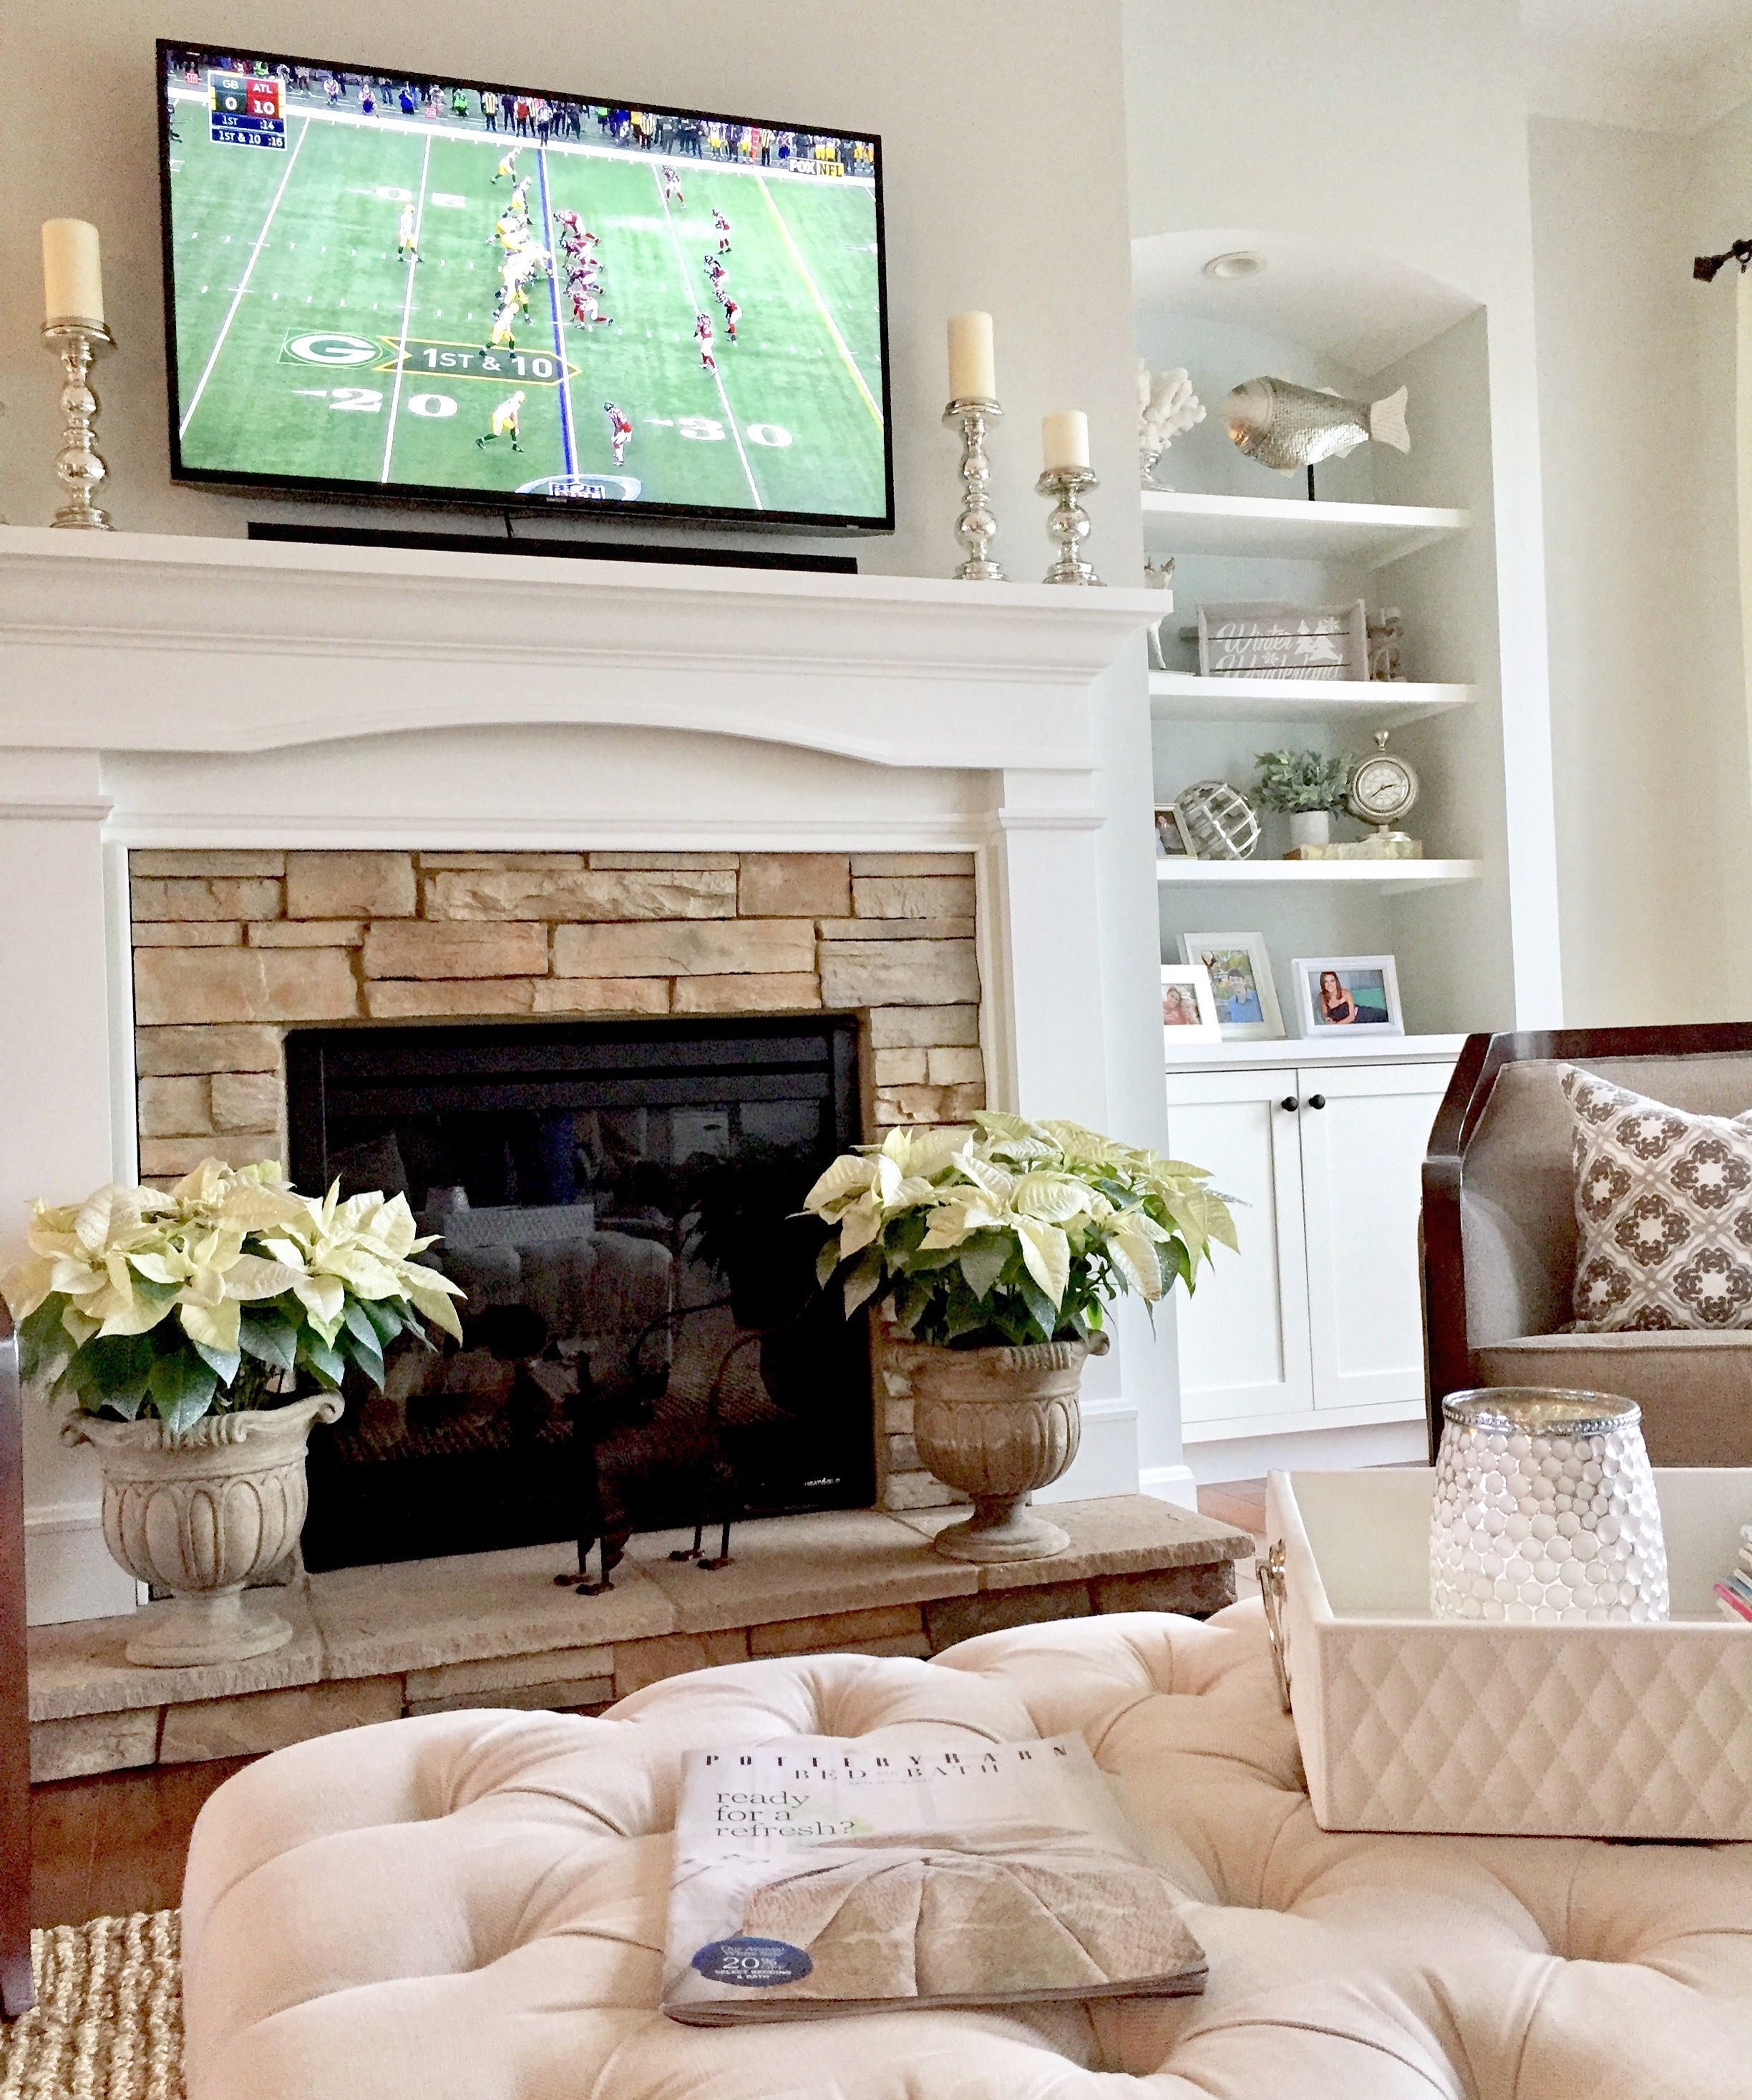 Paint color Sherwin Williams Conservative Gray Fireplace built